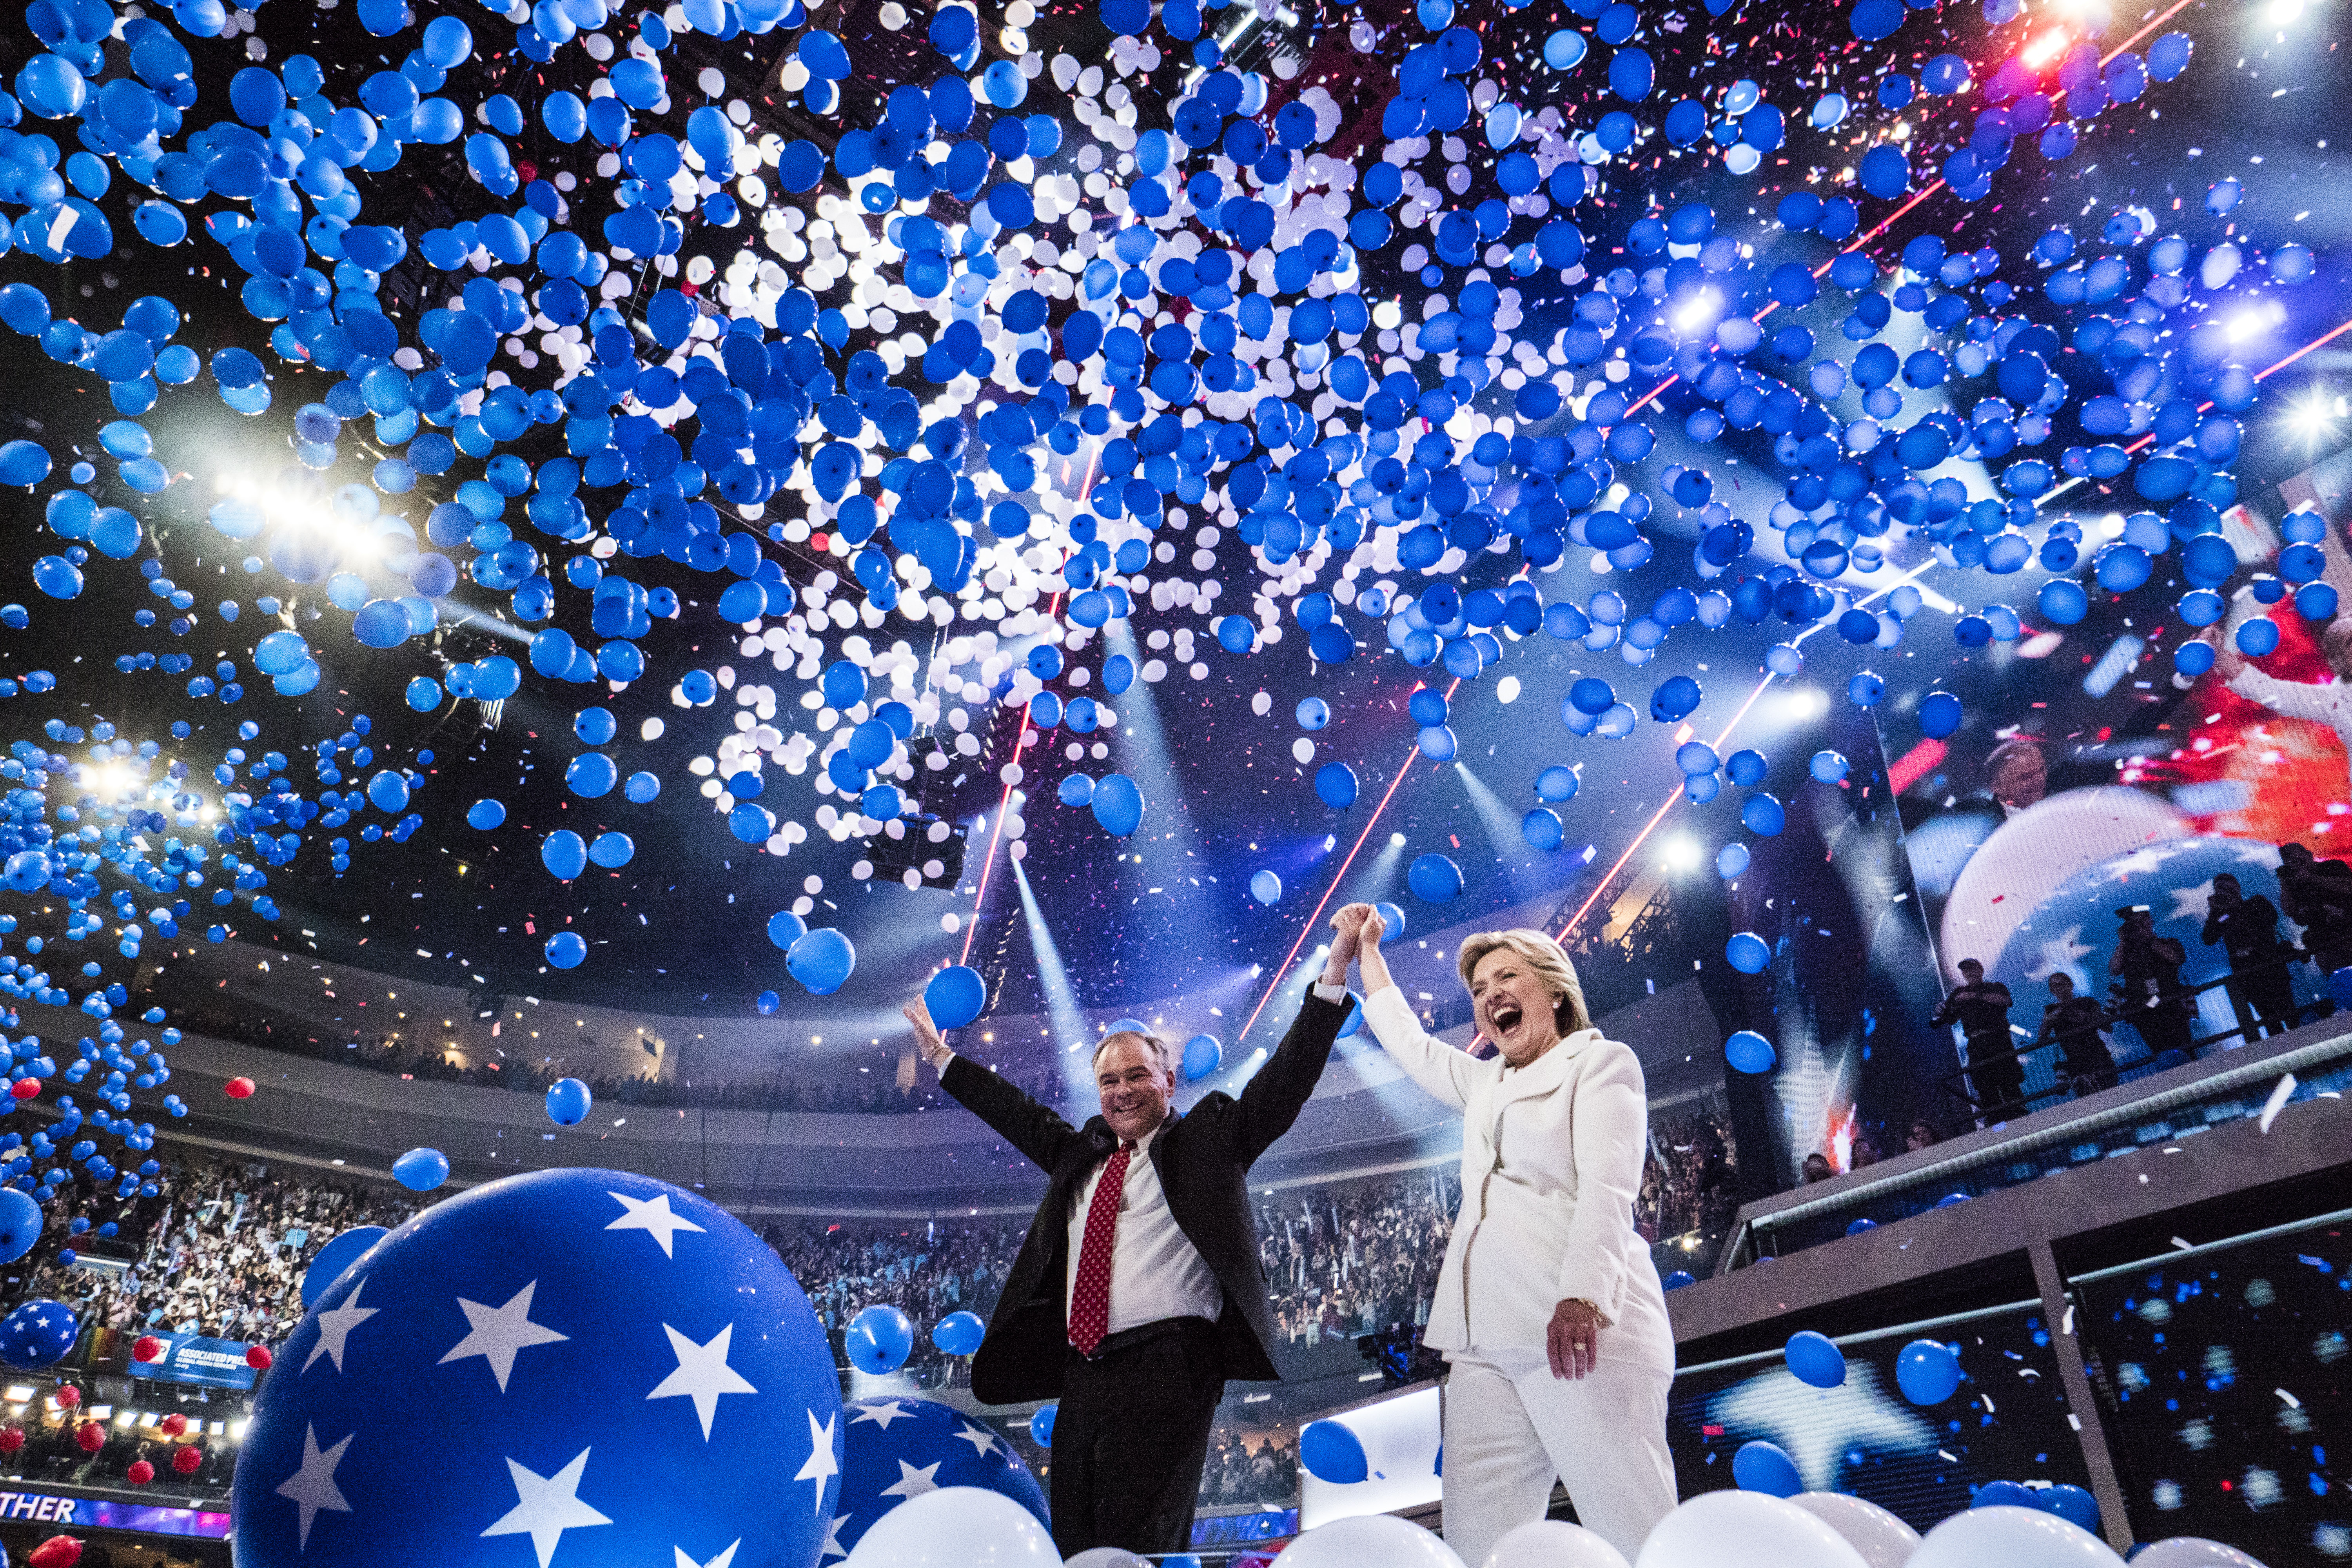 Democratic presidential nominee Hillary Clinton and running mate Tim Kaine celebrate at the Democratic National Convention in Philadelphia on July 28, 2016.